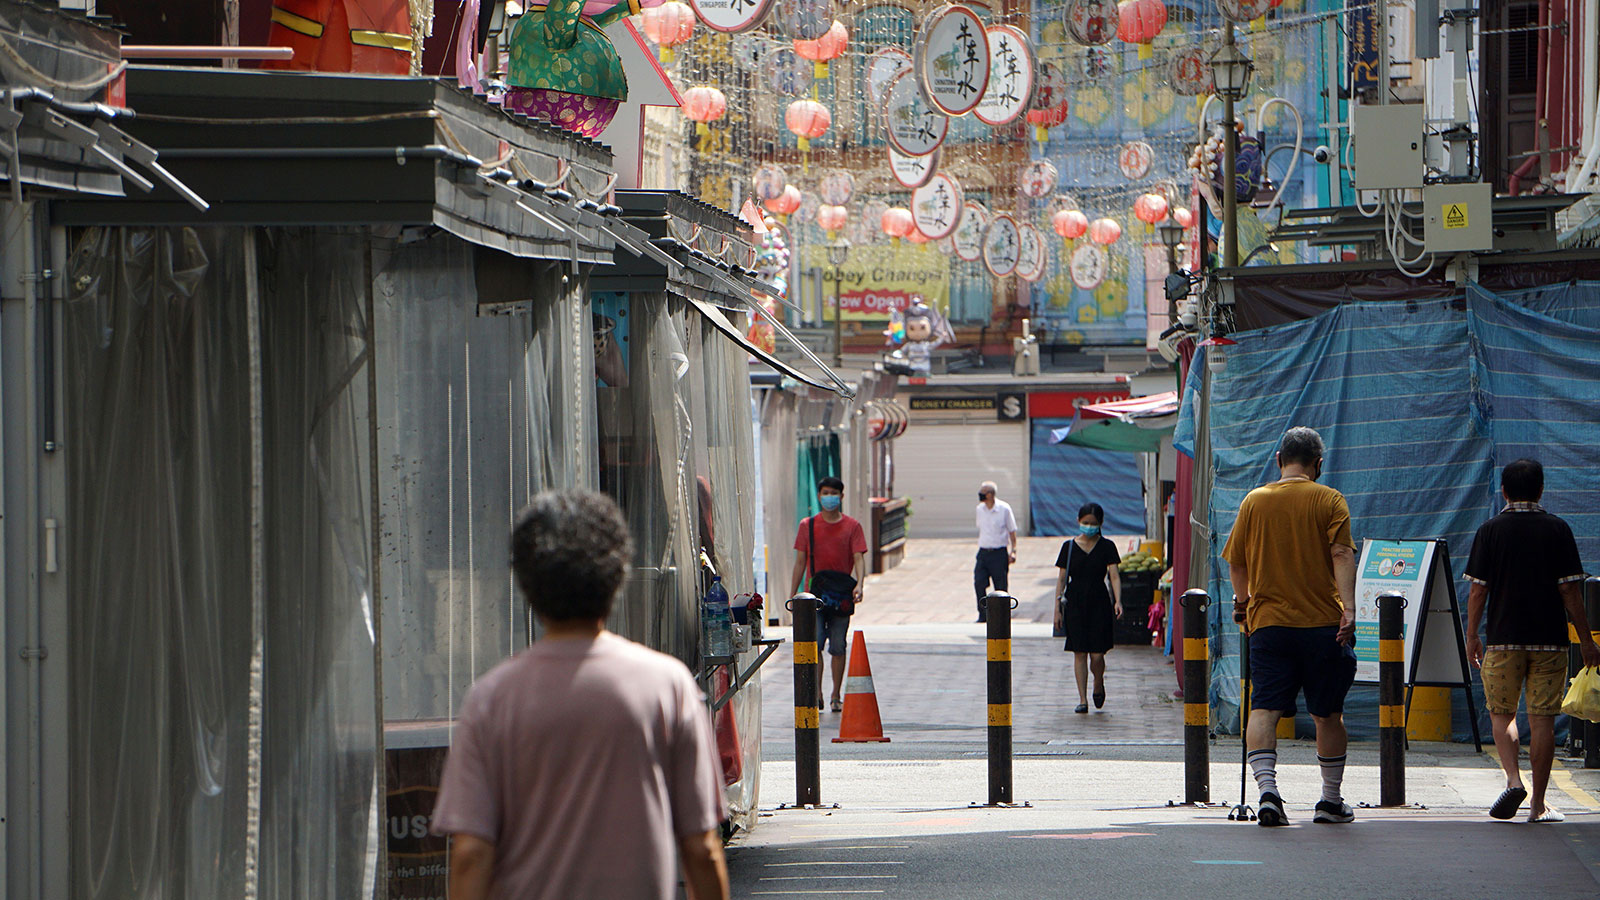 People walk past closed shops in the Chinatown district of Singapore on April 13.